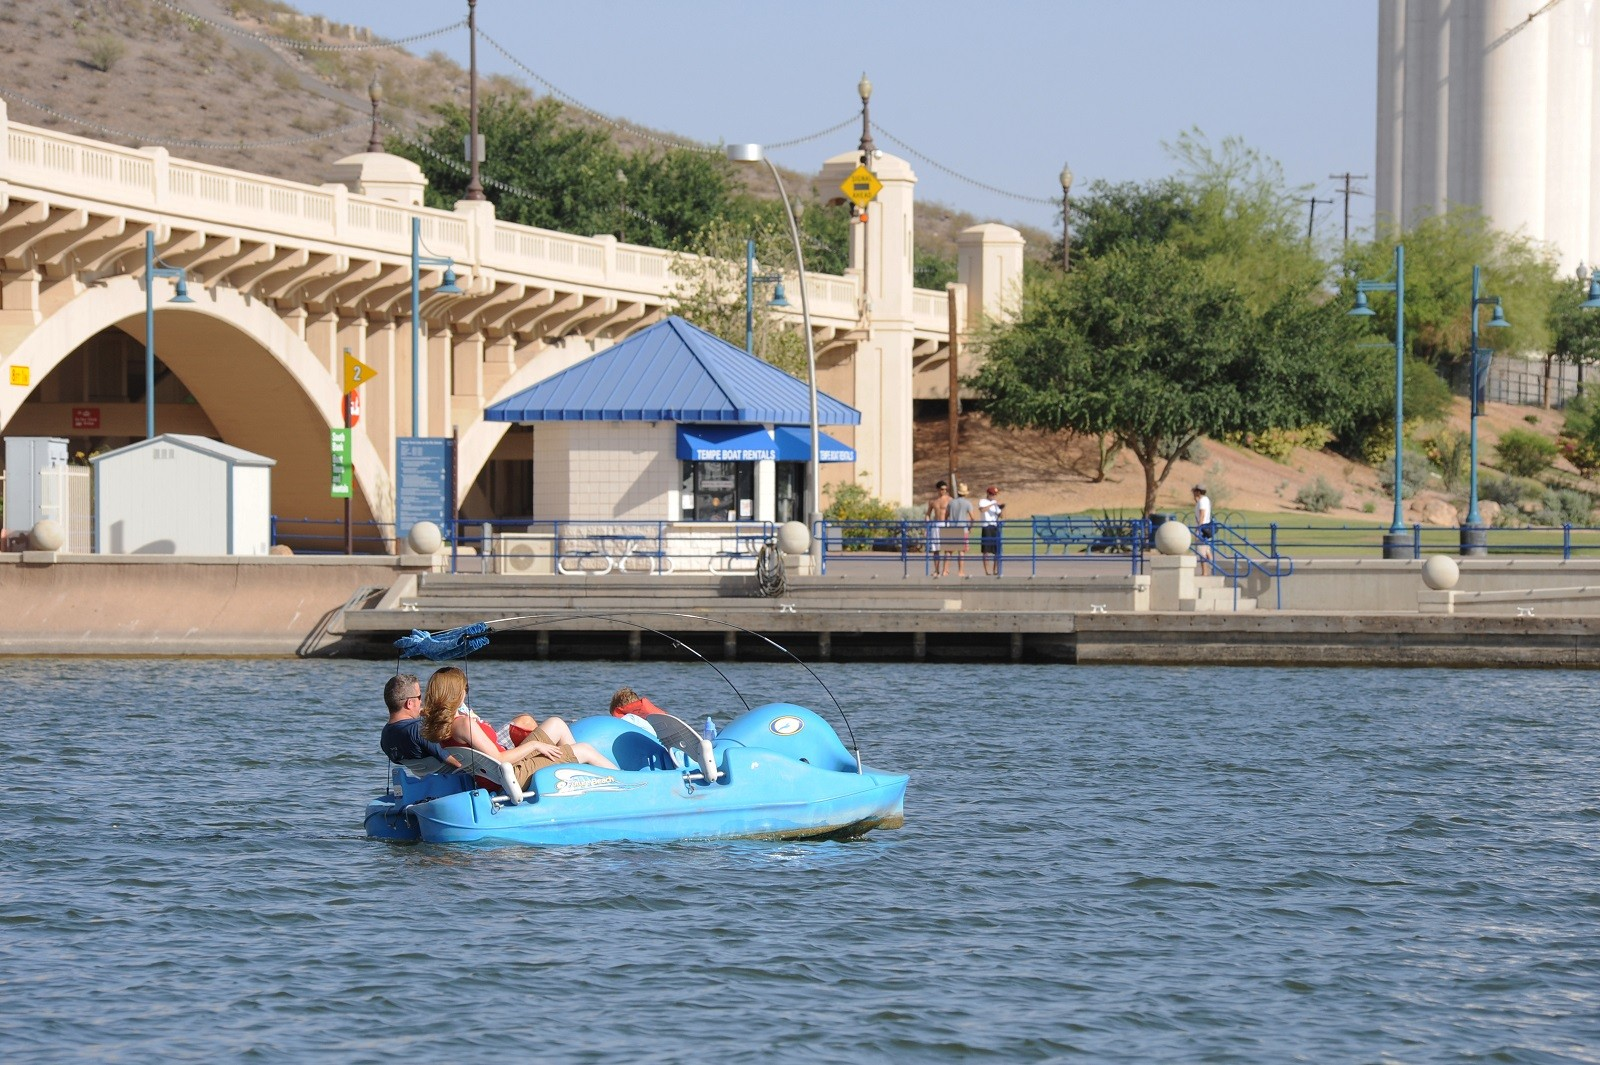 Tempe Town Boats4rent